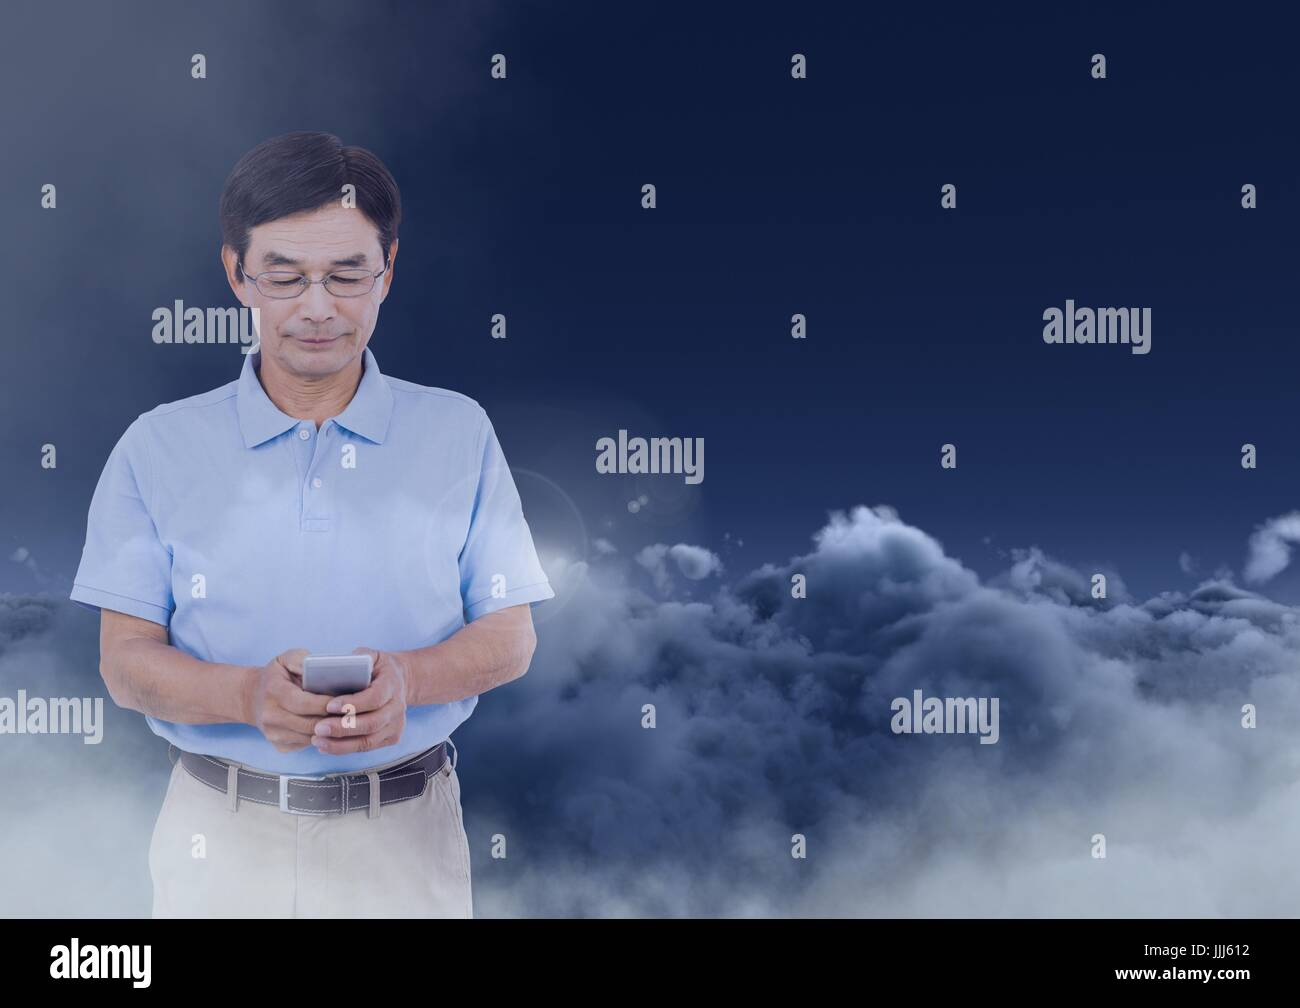 Man texting in darkness with clouds in background - Stock Image